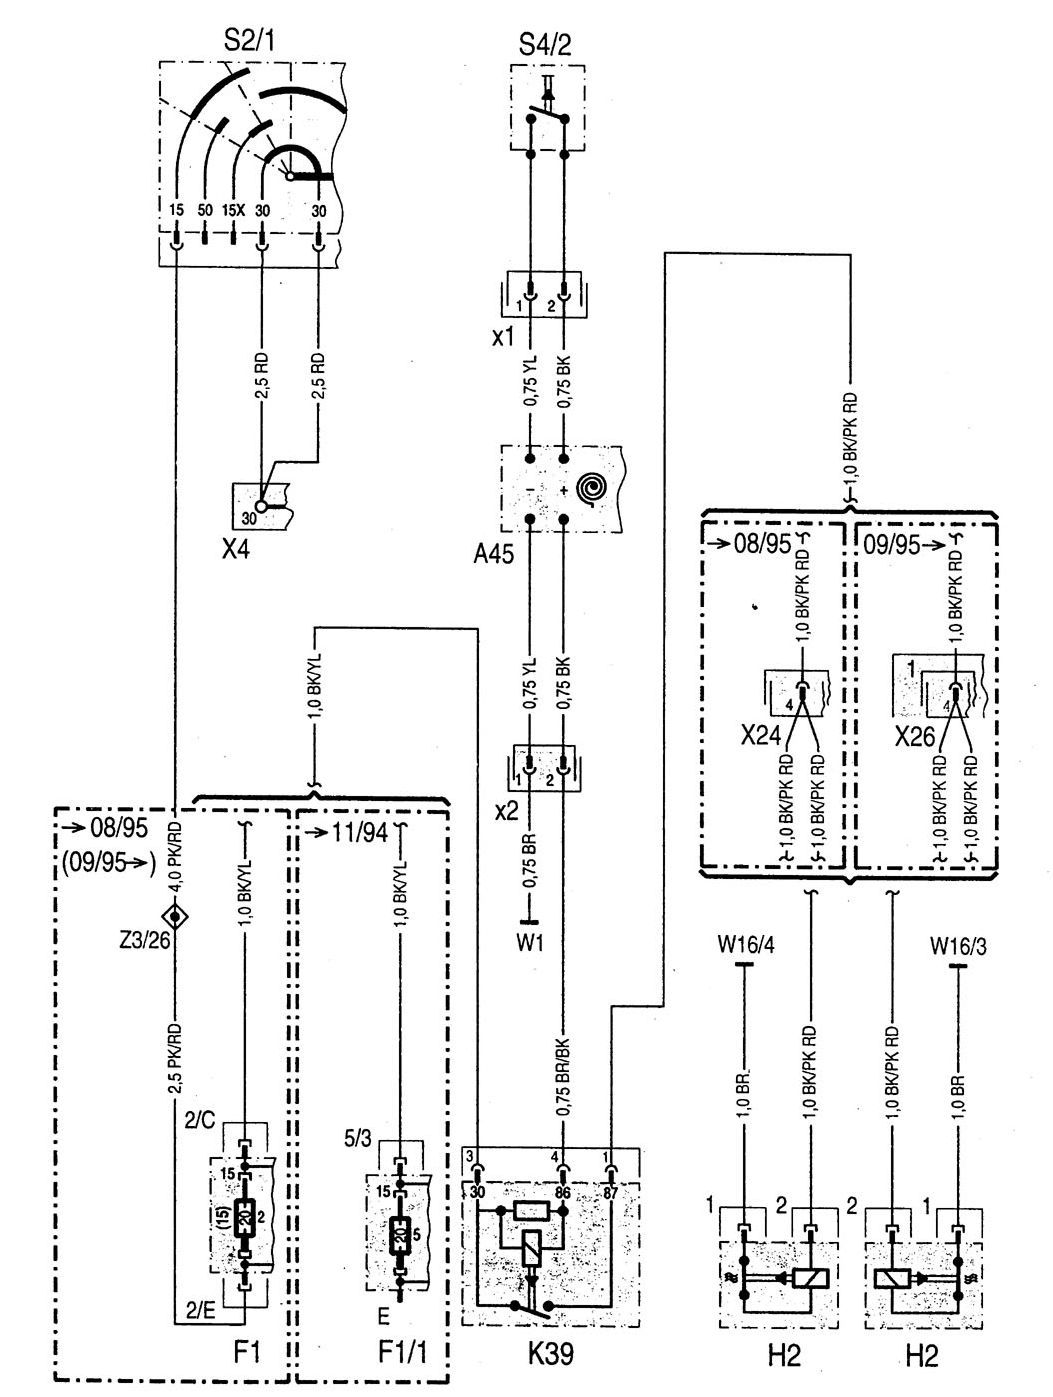 mercedes benz wiring schematics wiring diagram honda wiring diagram mercedes benz wiring diagram free